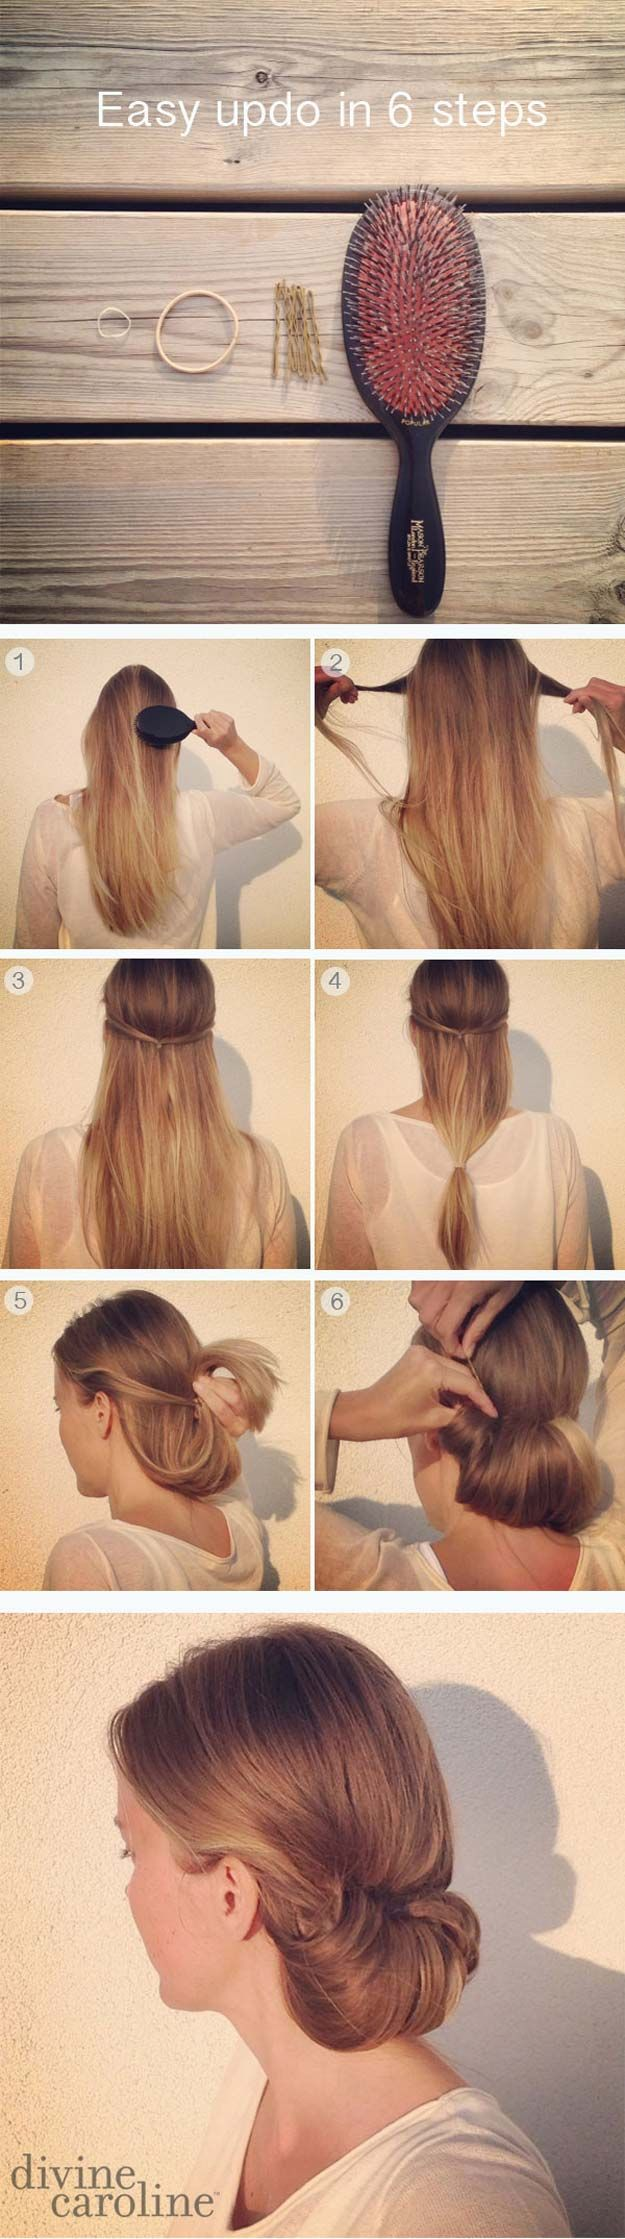 Easy Hairstyles for Work - Easy Updo in 6 Minutes - Quick and Easy Hairstyles For The Lazy Girl. Great Ideas For Medium Hair, Long Hair, Short Hair, The Undo and Shoulder Length Hair. DIY And Step By Step - https://www.thegoddess.com/easy-hairstyles-for-work